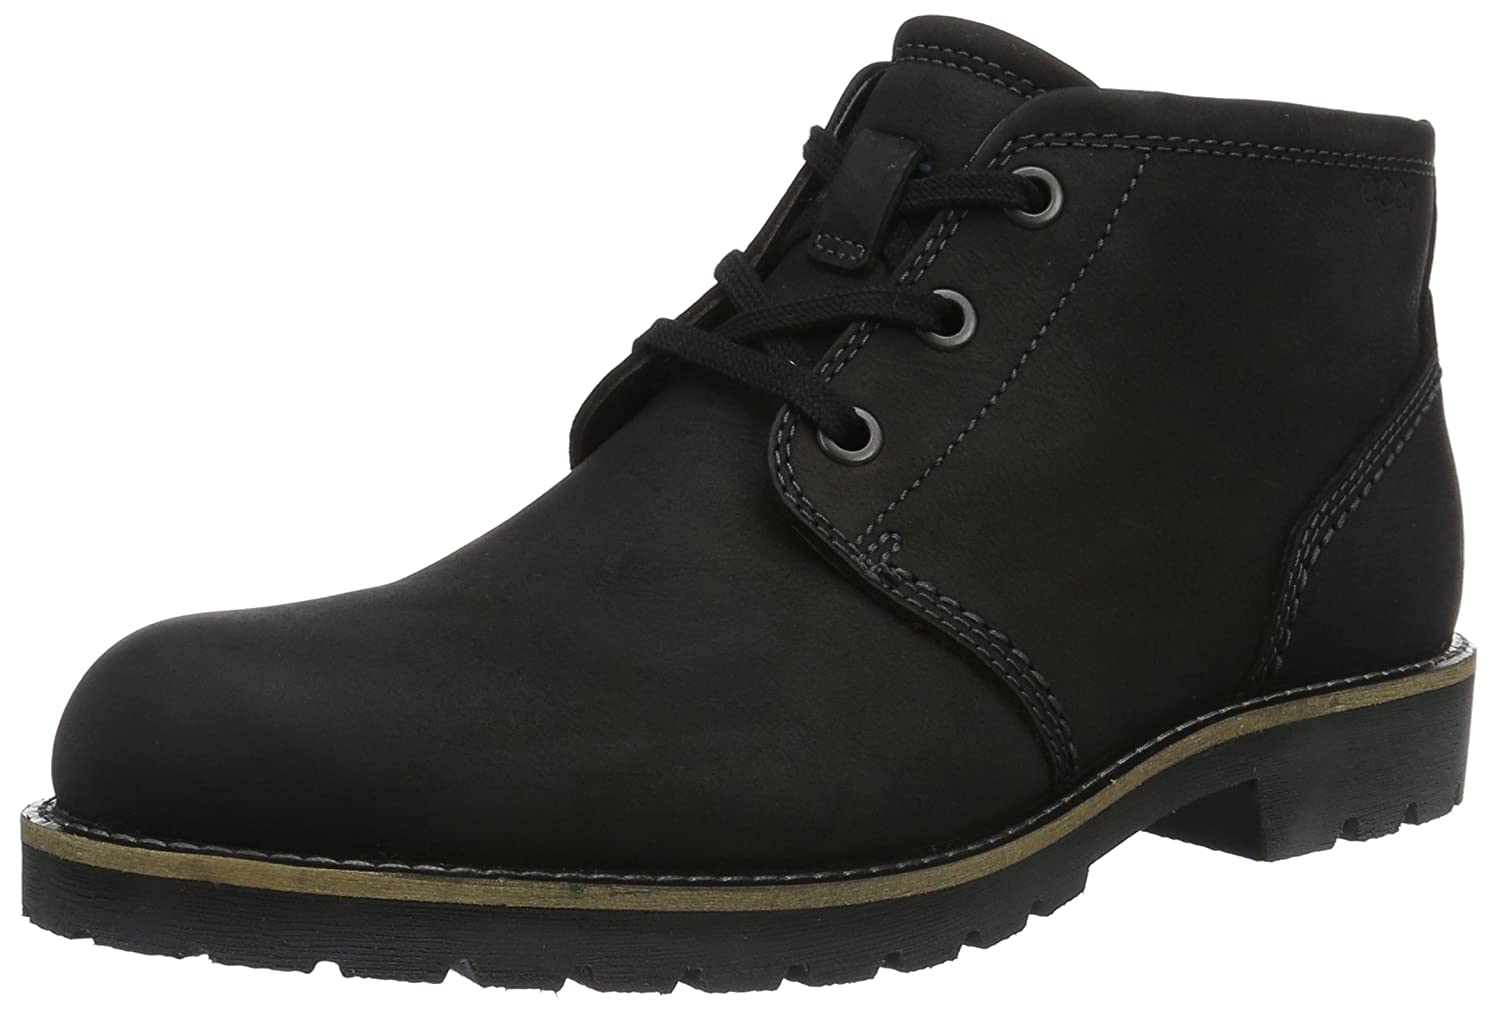 381cf93f43 ECCO Men's Jamestown Mid Chukka Boot